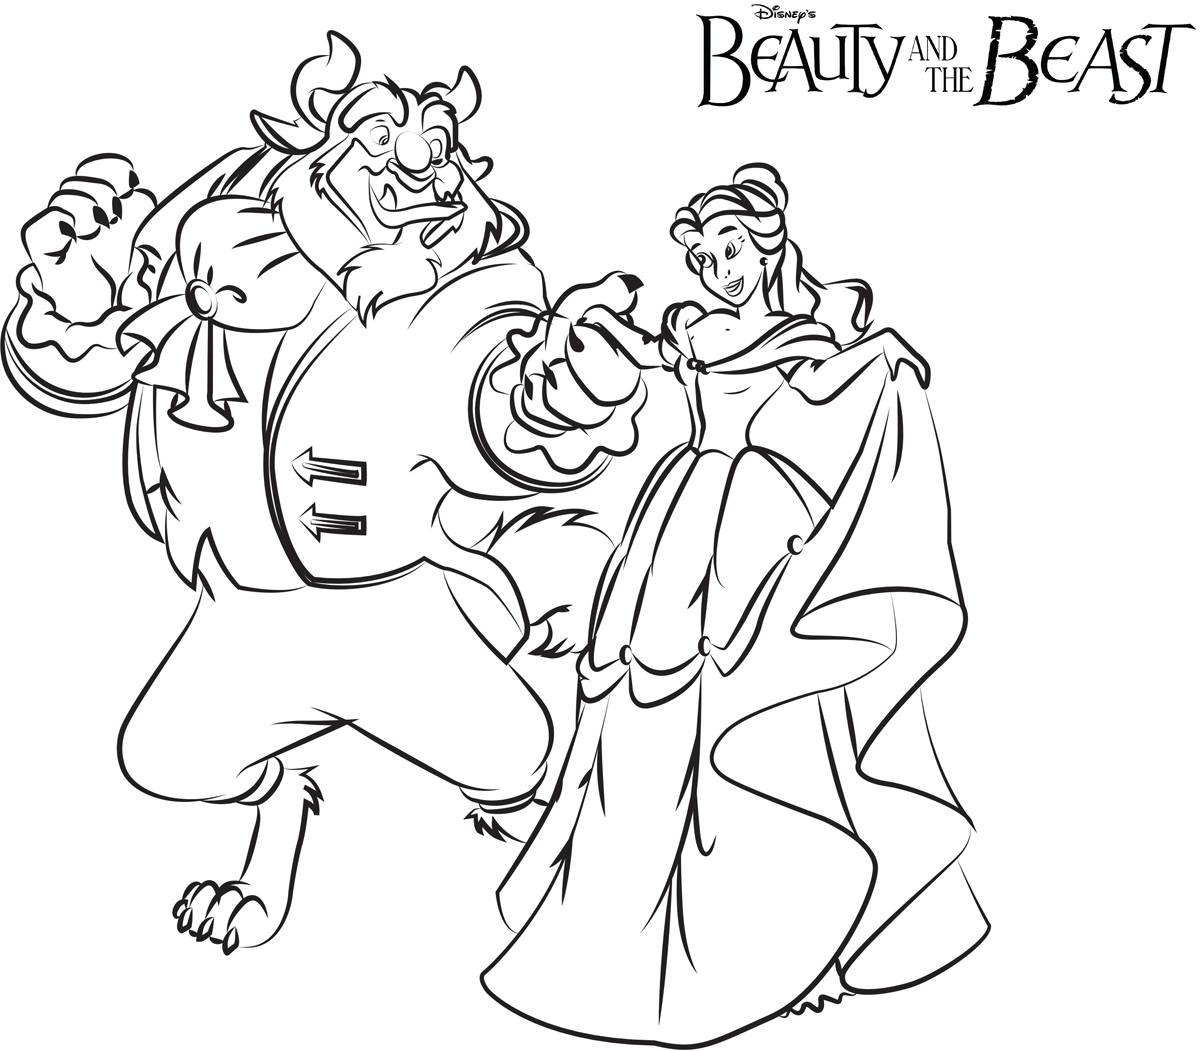 Ballroom dance beauty and the beast coloring pages